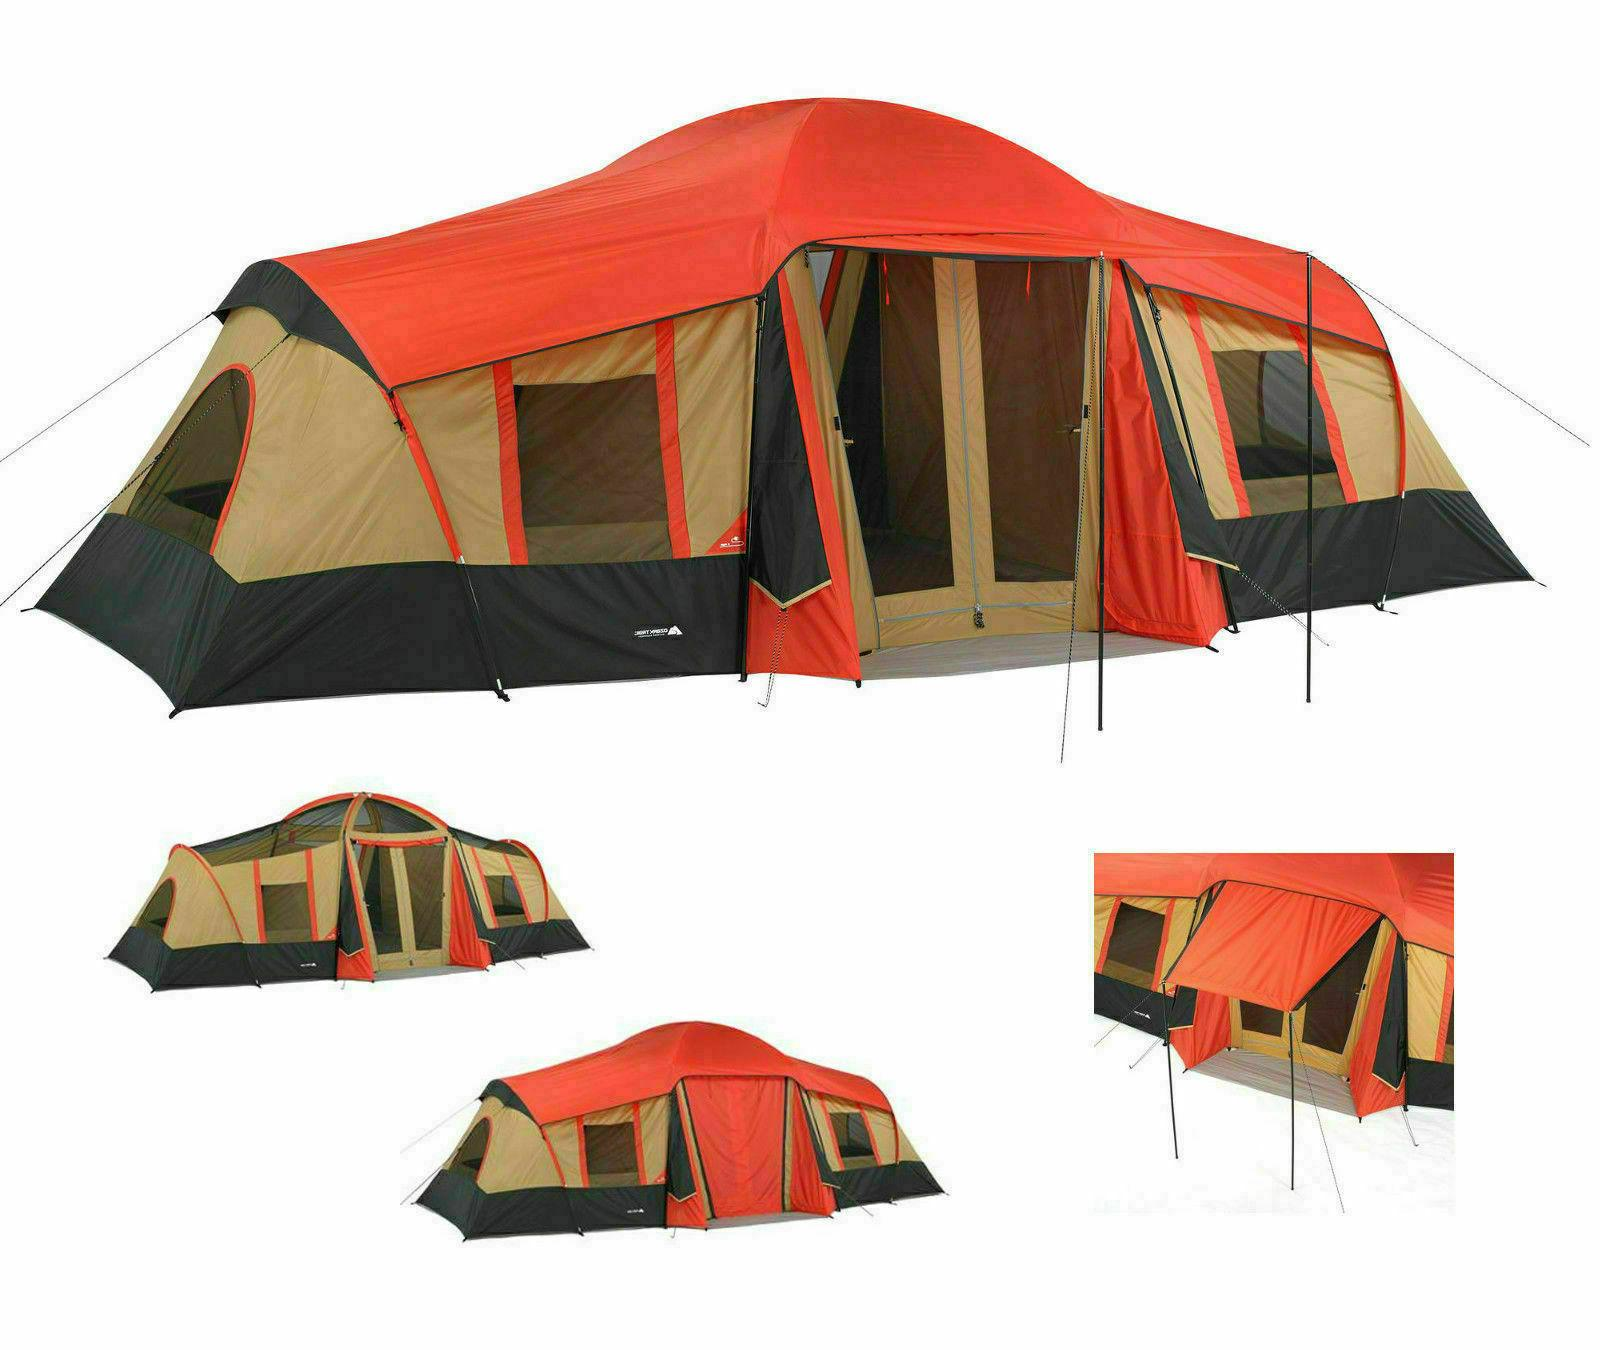 bc5d53772f Ozark Trail 3 Room Cabin Tent 10 Person 20'x11' Large Campin